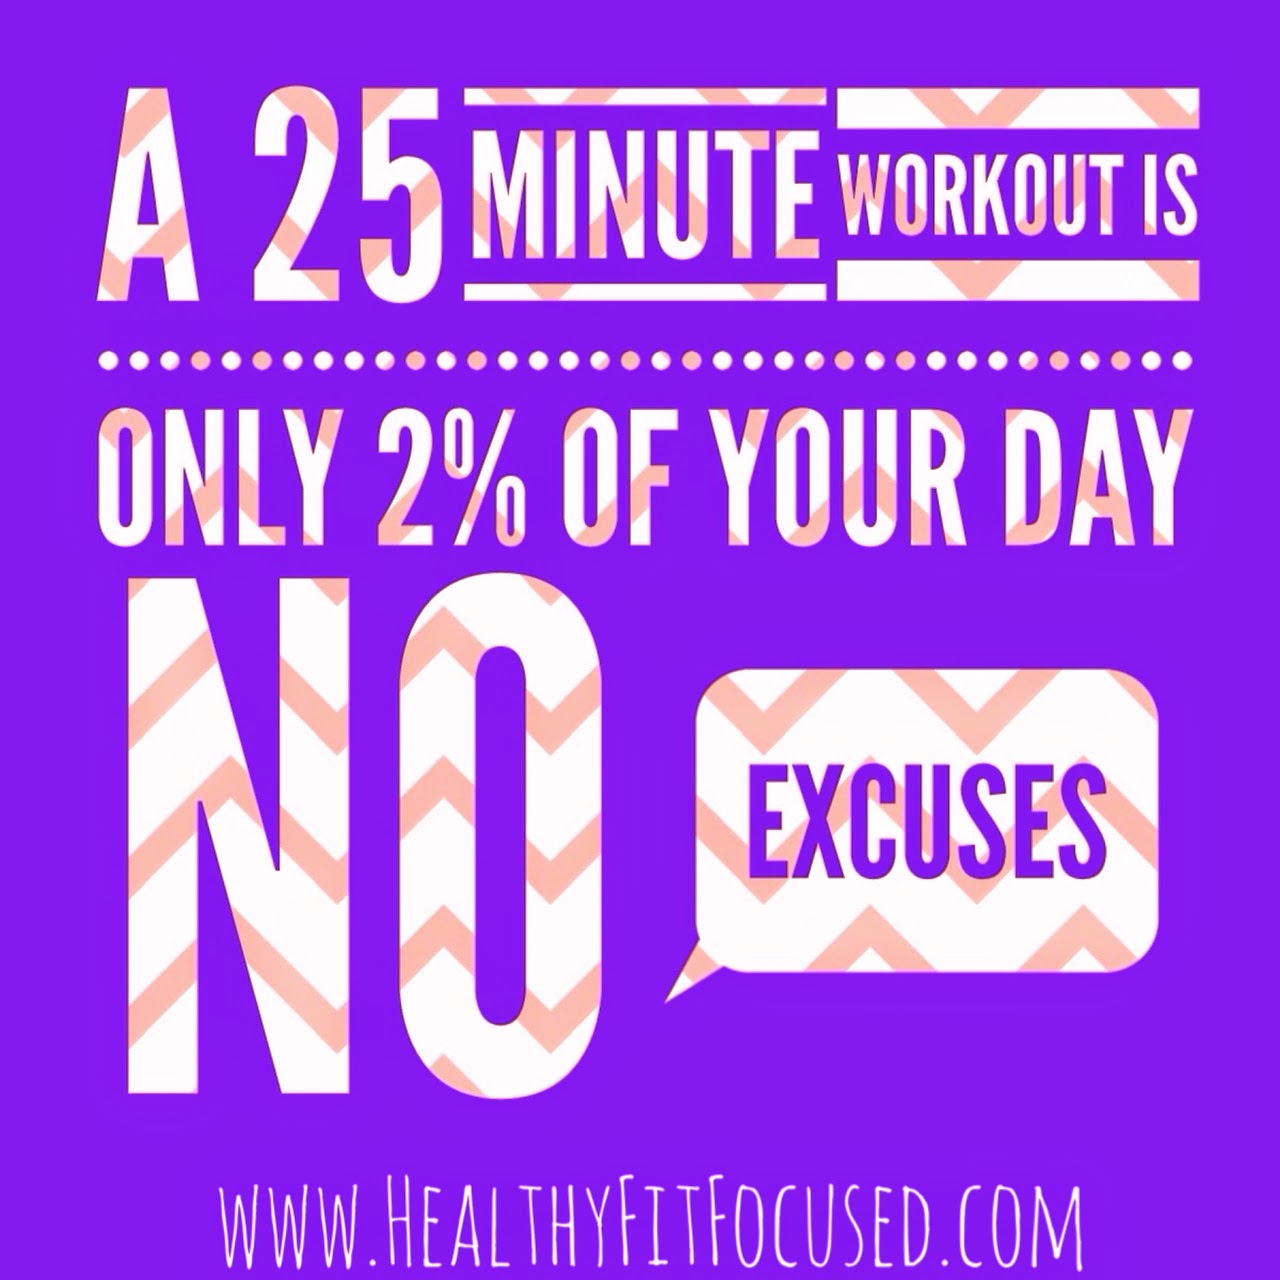 T25, get it done, NO excuses